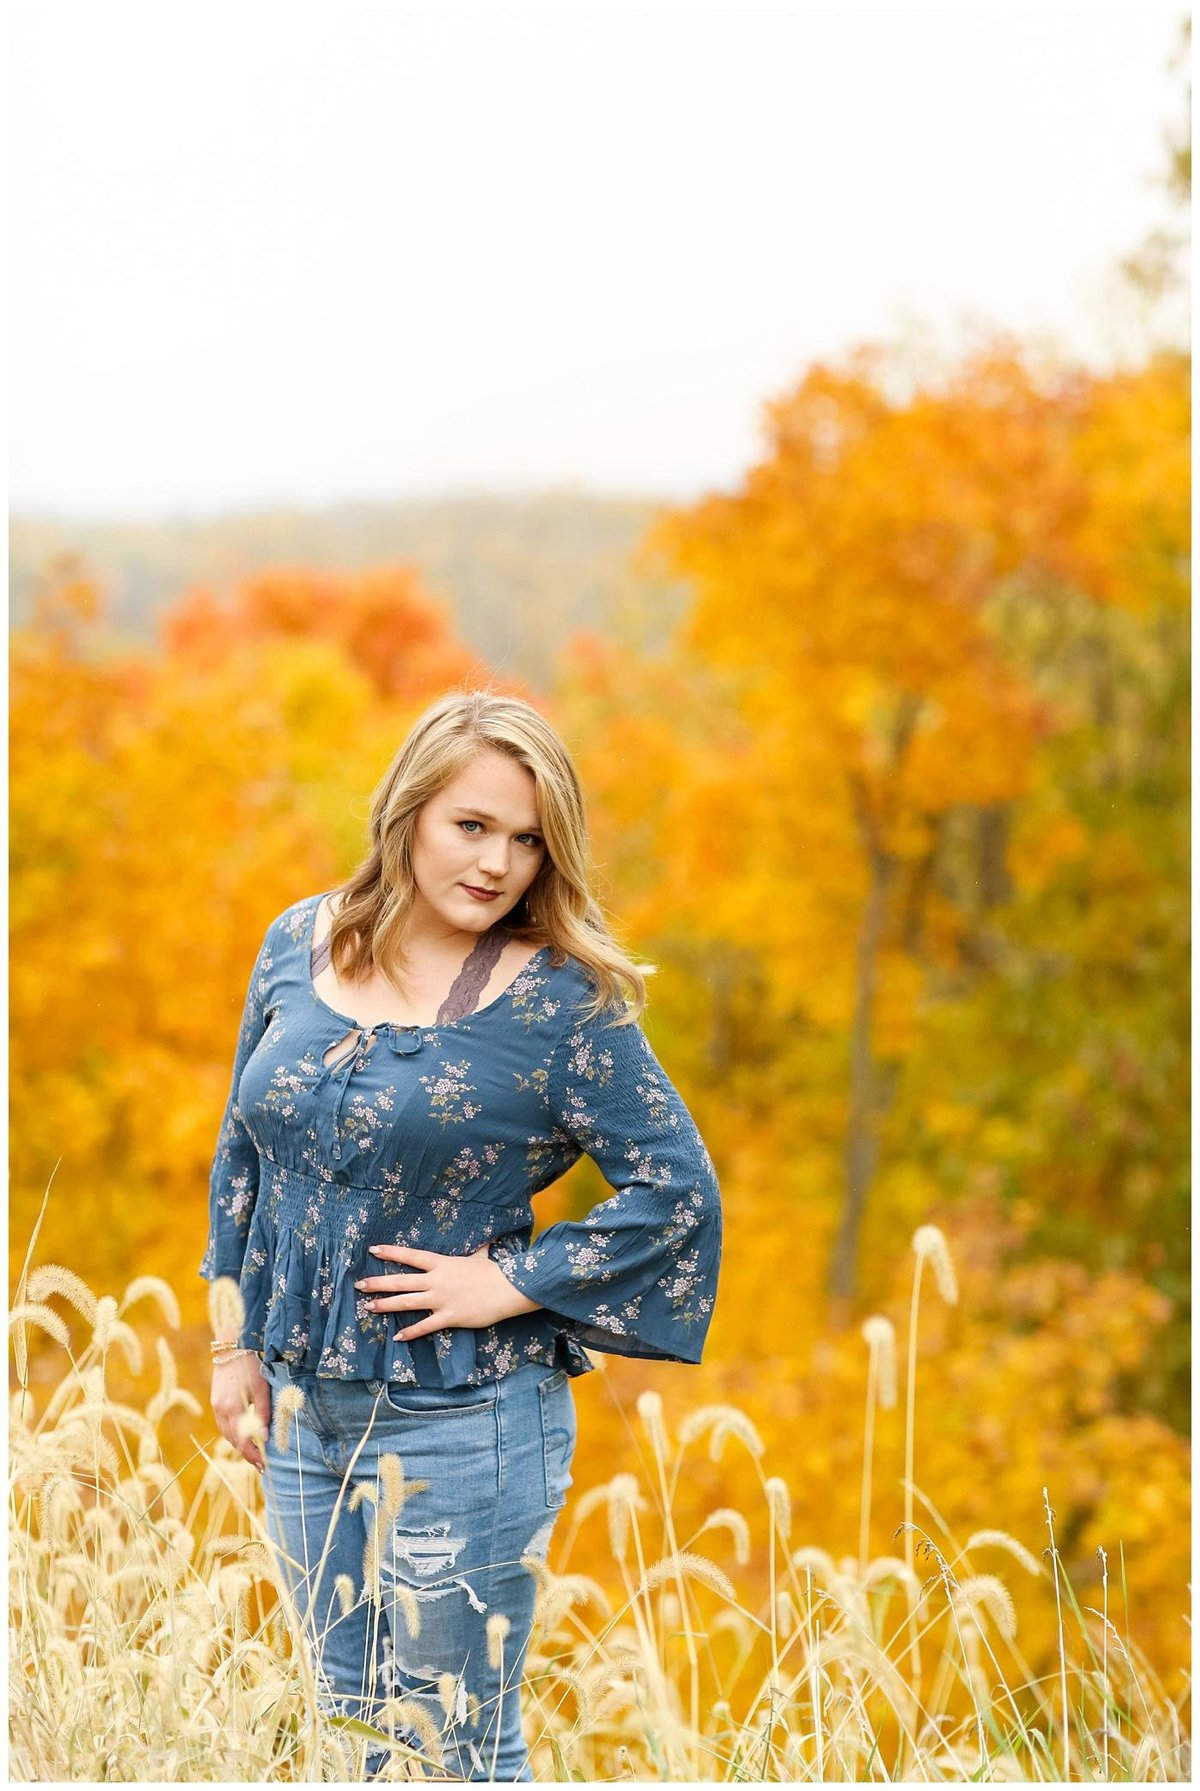 Central Illinois Senior Photographer | Macomb, IL Senior Photographer |  Creative Touch Photography_4862